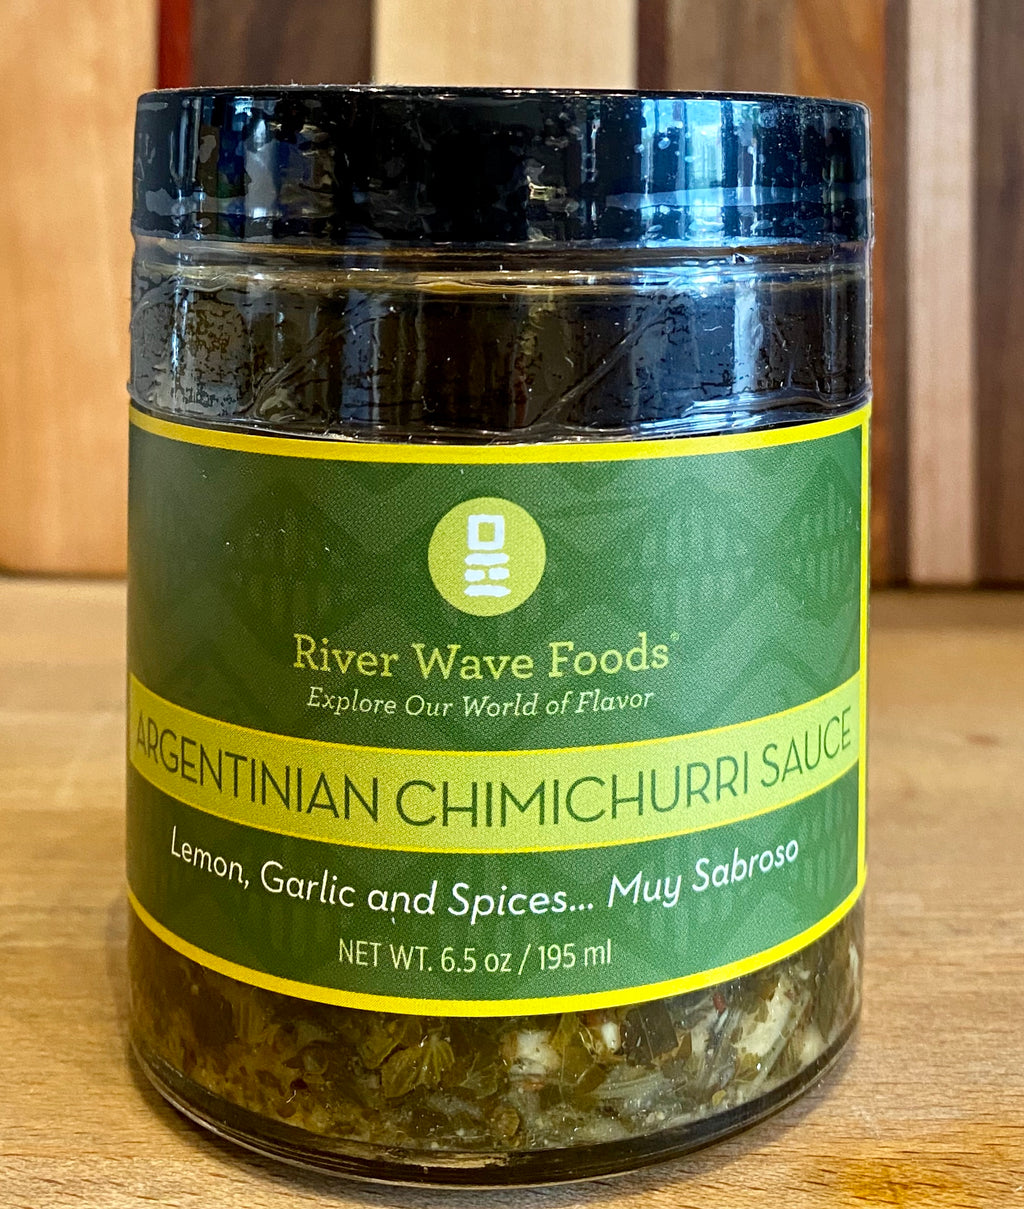 Argentinian Chimichurri Sauce - River Wave Foods